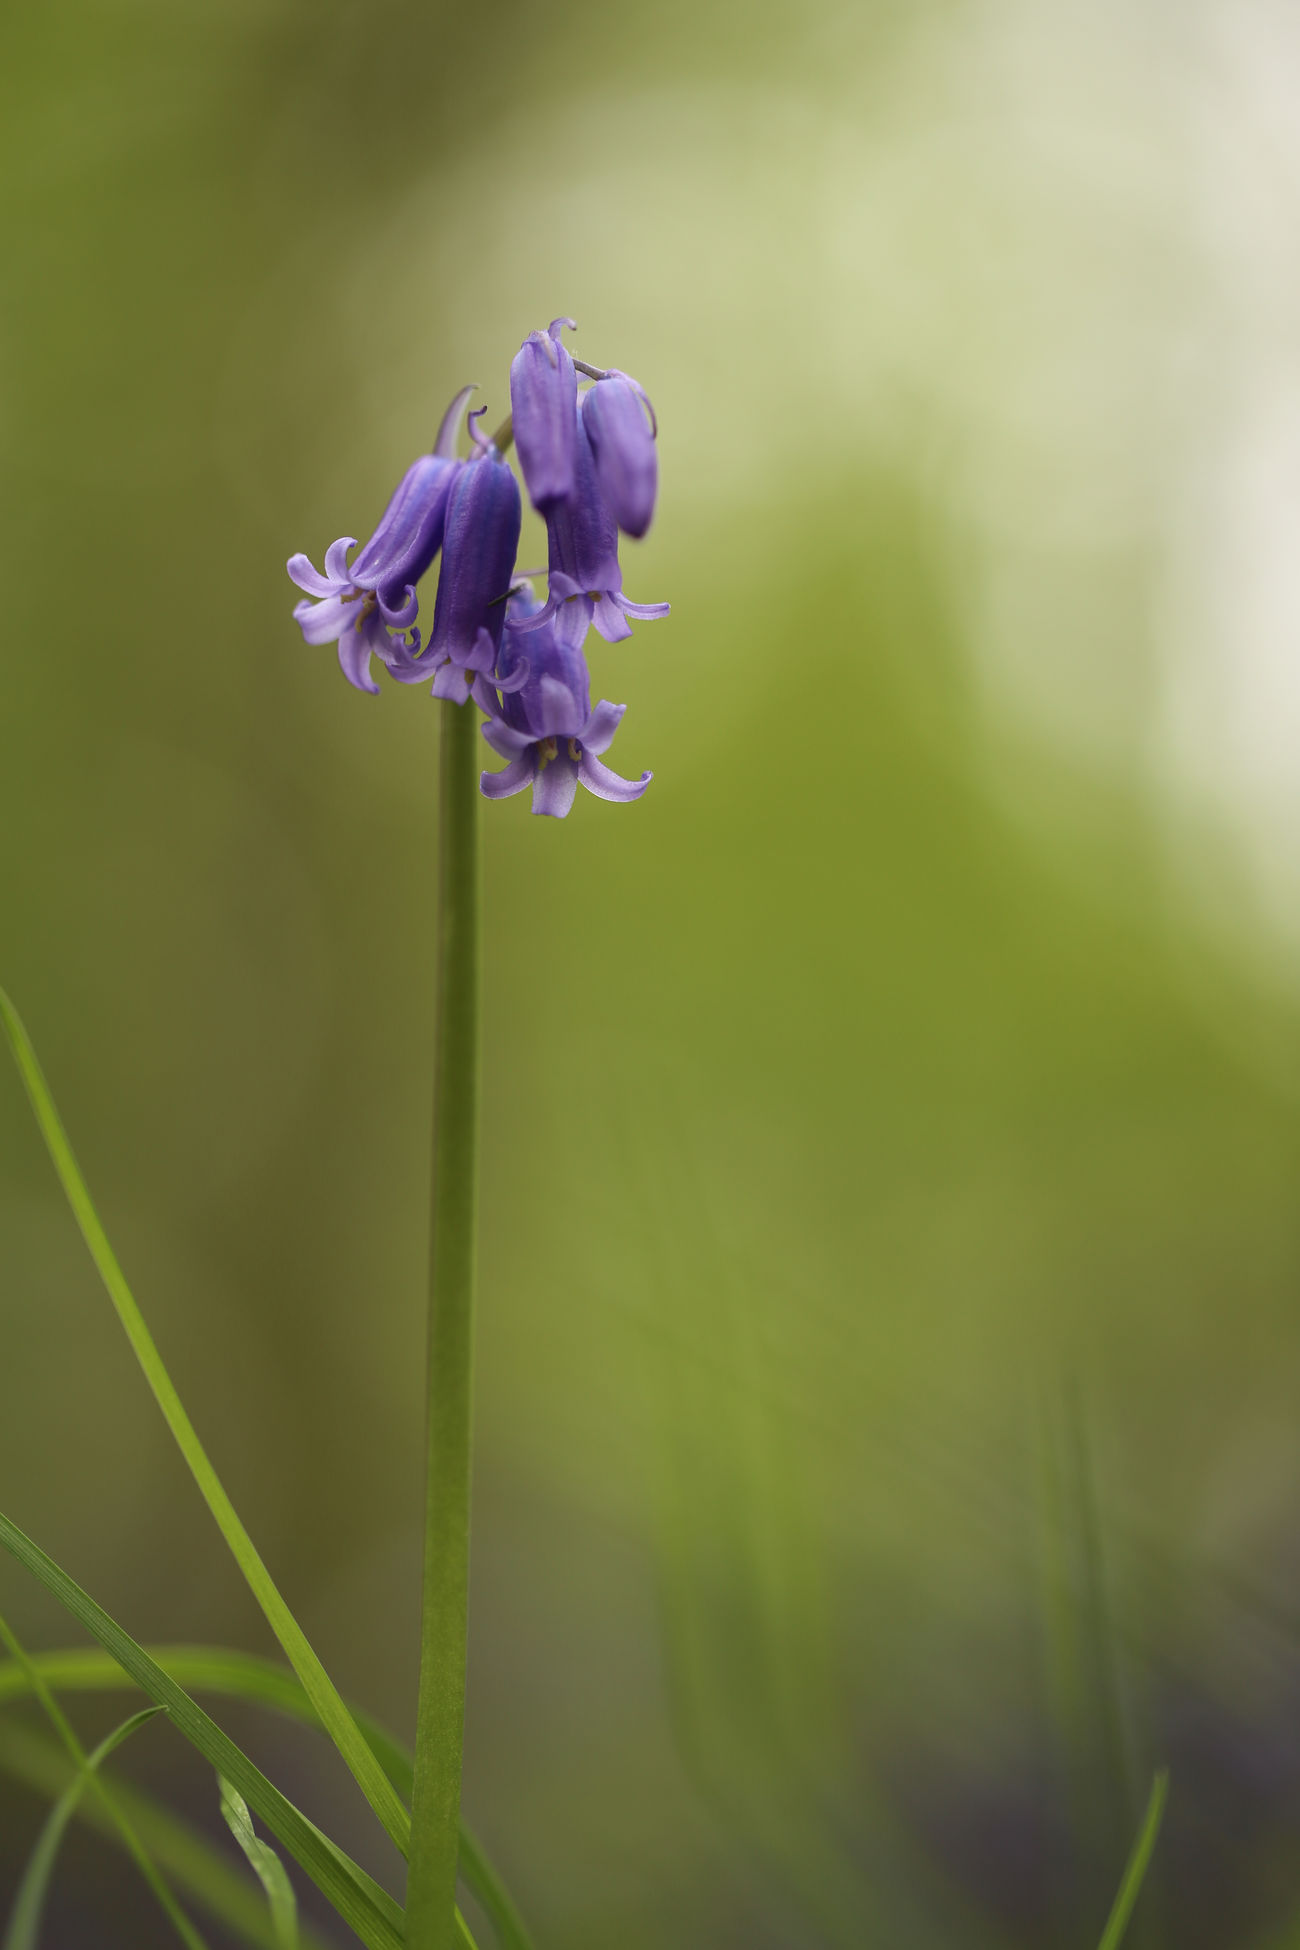 Flower Purple Fragility Beauty In Nature Close-up Uncultivated Green Color Flower Head No People Nature Freshness Blue Bells Hallerbos - Bois De Hal Macro Photography Blue Bell Flowers Landscape Beauty In Nature Nature Spring Macro Hallerbos Depth Of Field Full Frame Soft Colors  Beauty In Everything